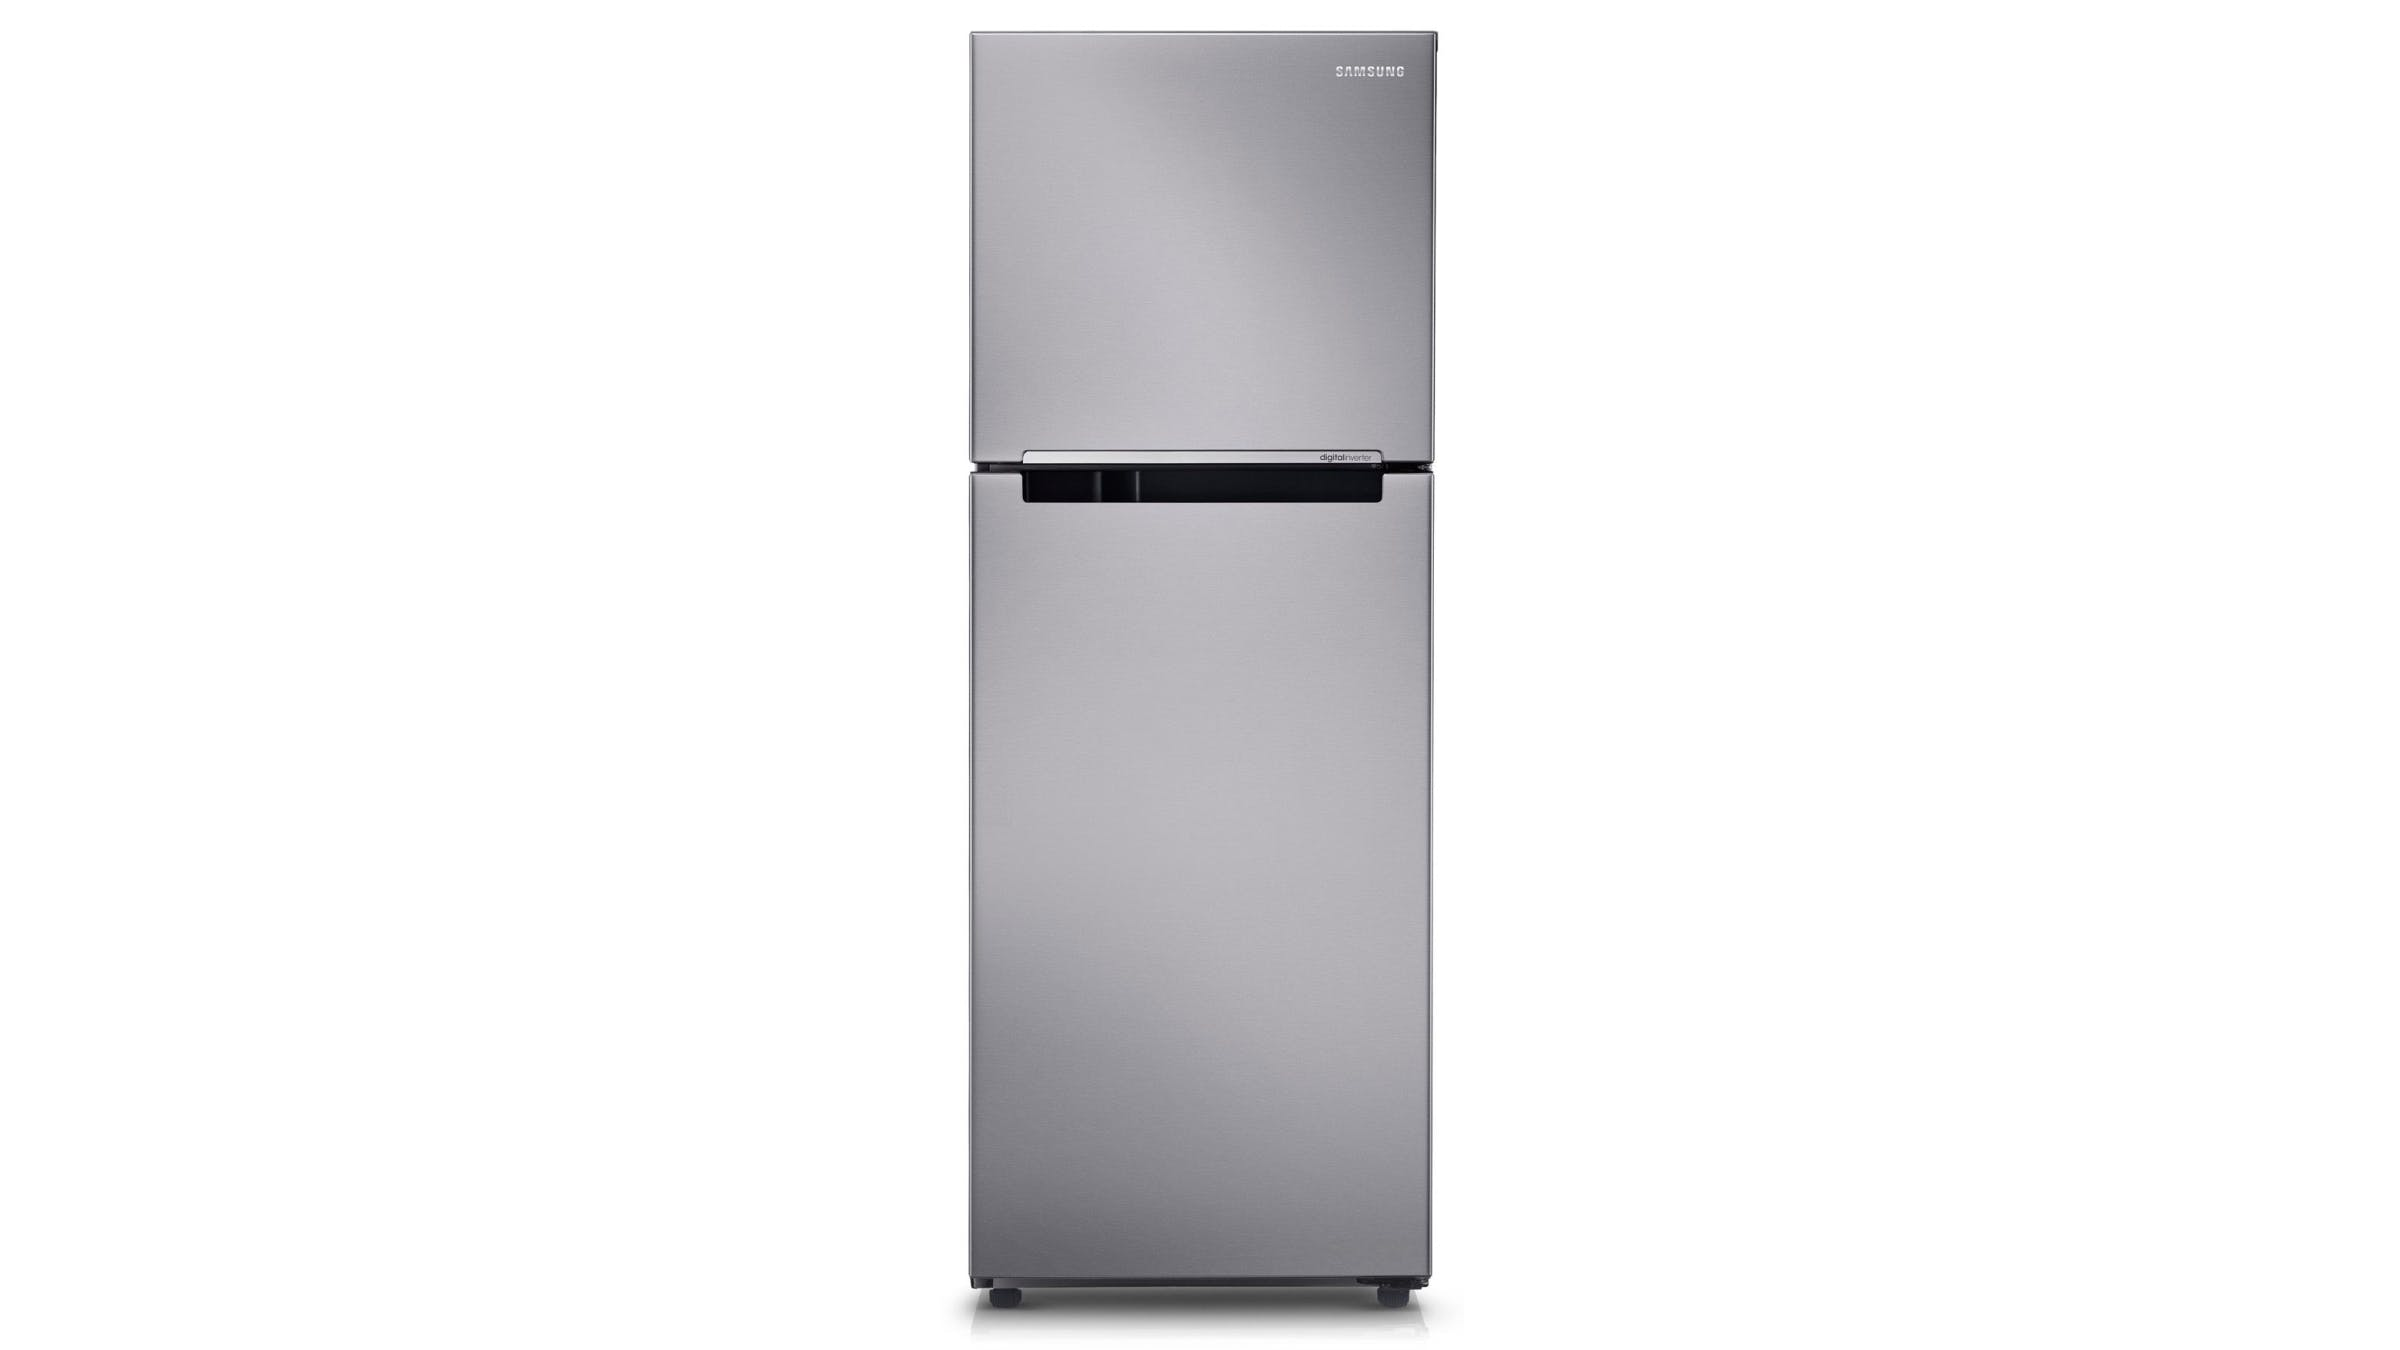 Samsung RT22F 234L Top Mount Refrigerator